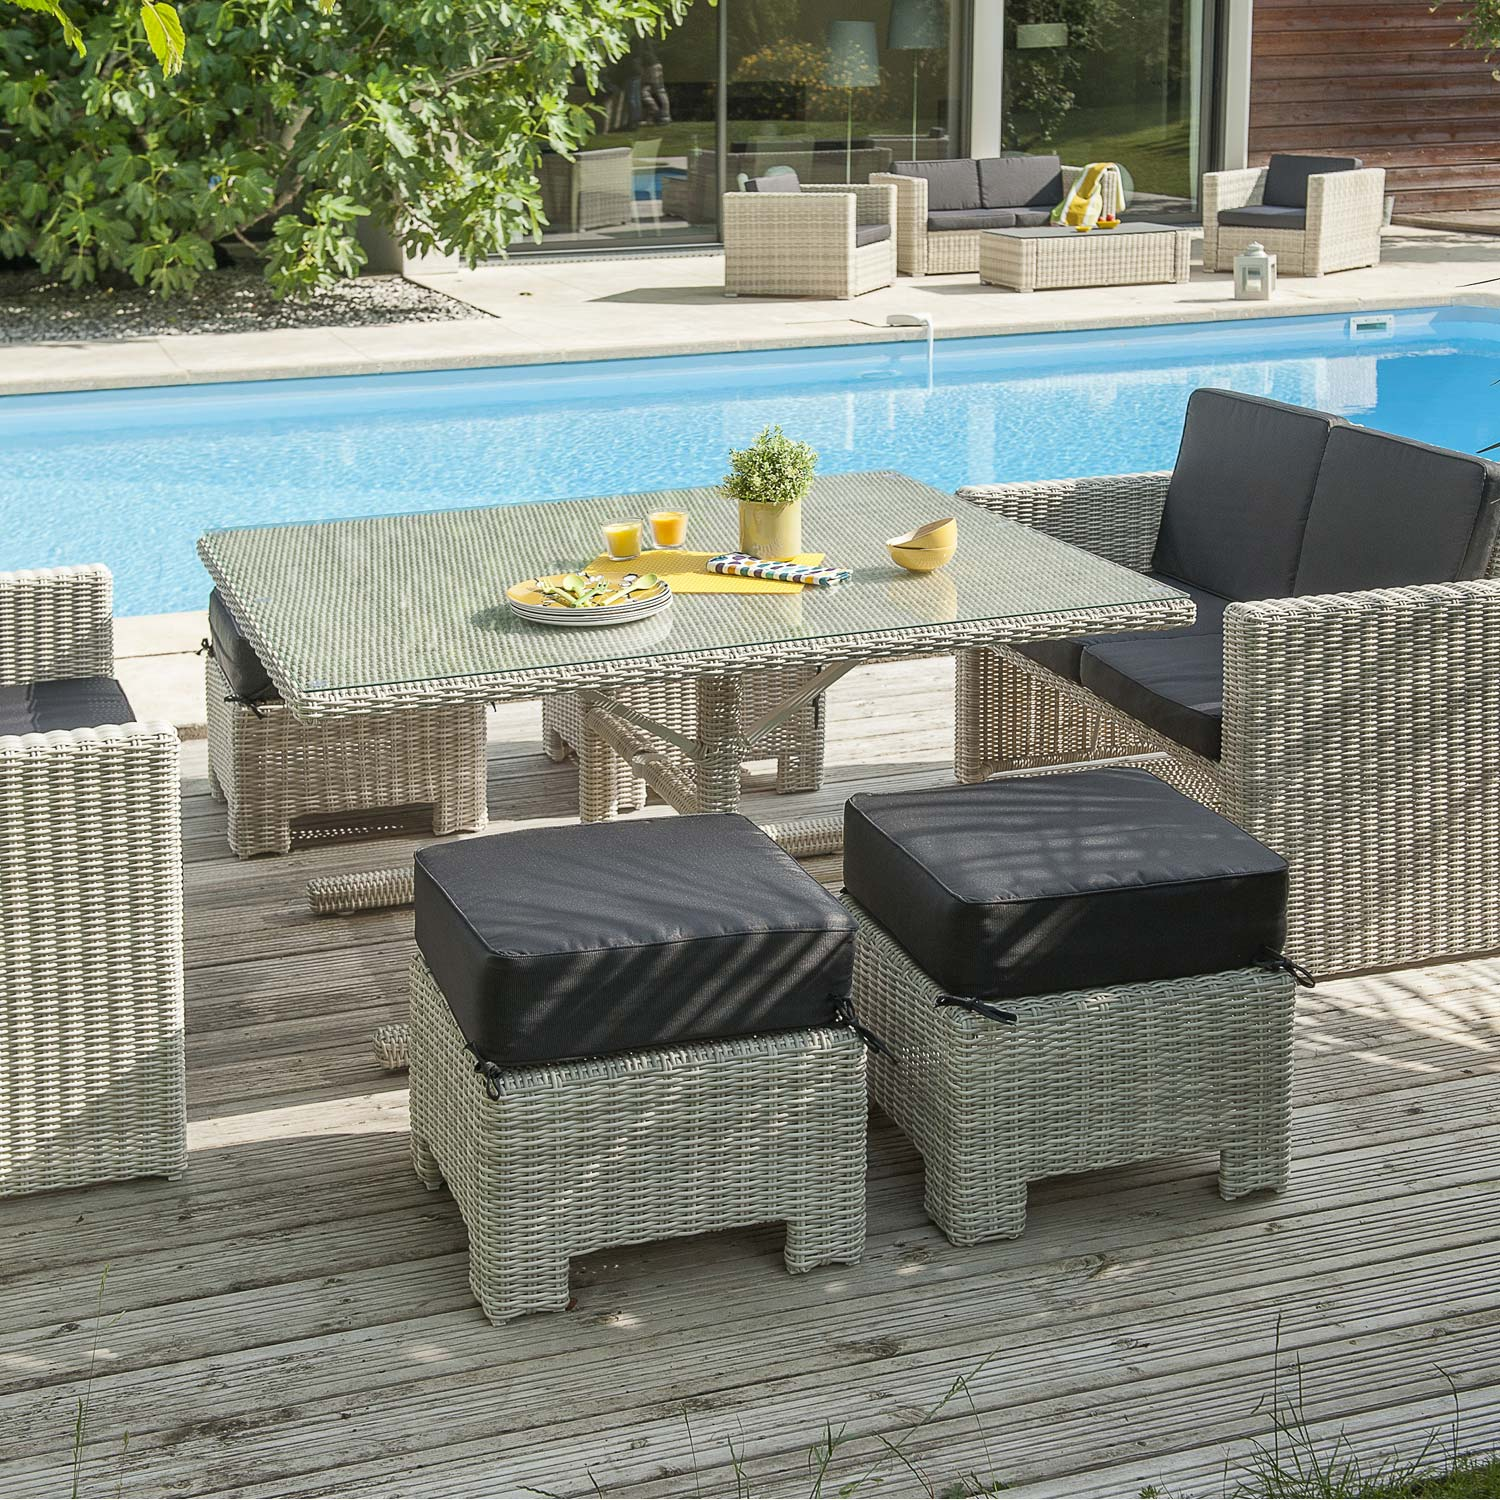 Salon jardin oceane lunch blanc 1 table 2 banquettes 4 poufs leroy merlin - Leroy merlin salon jardin resine toulon ...